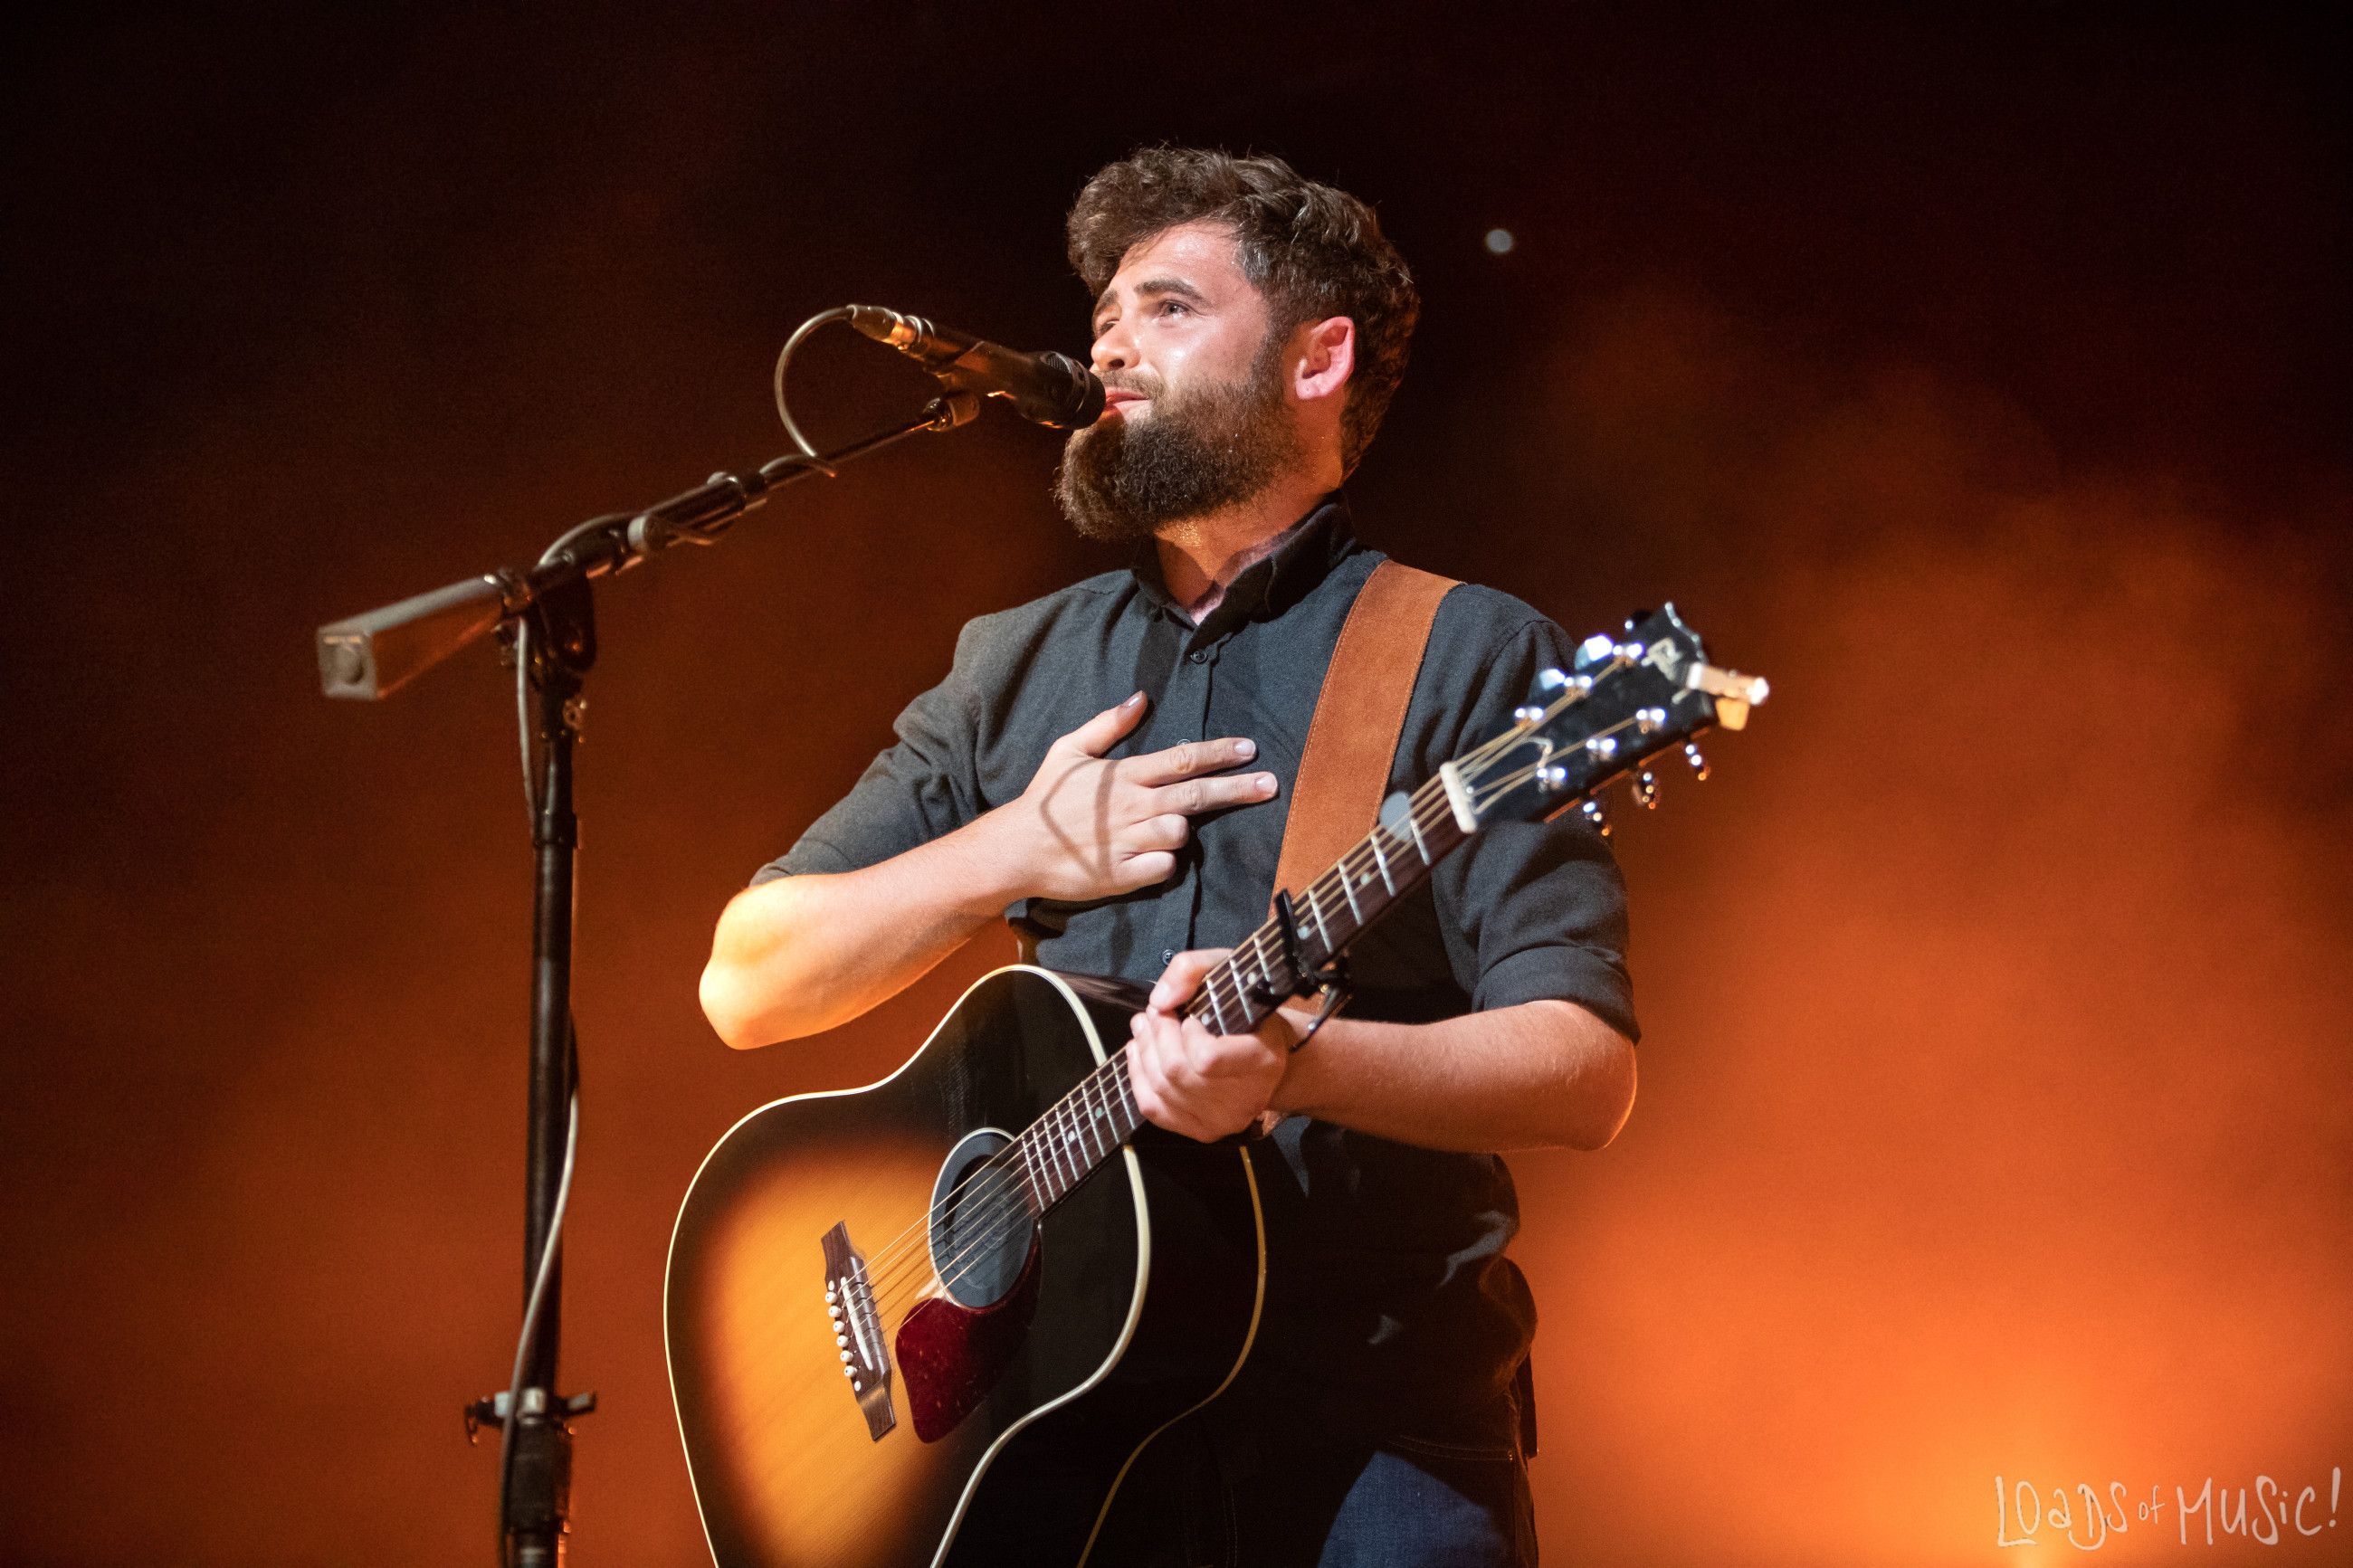 concert review pictures passenger volkshaus loads of music